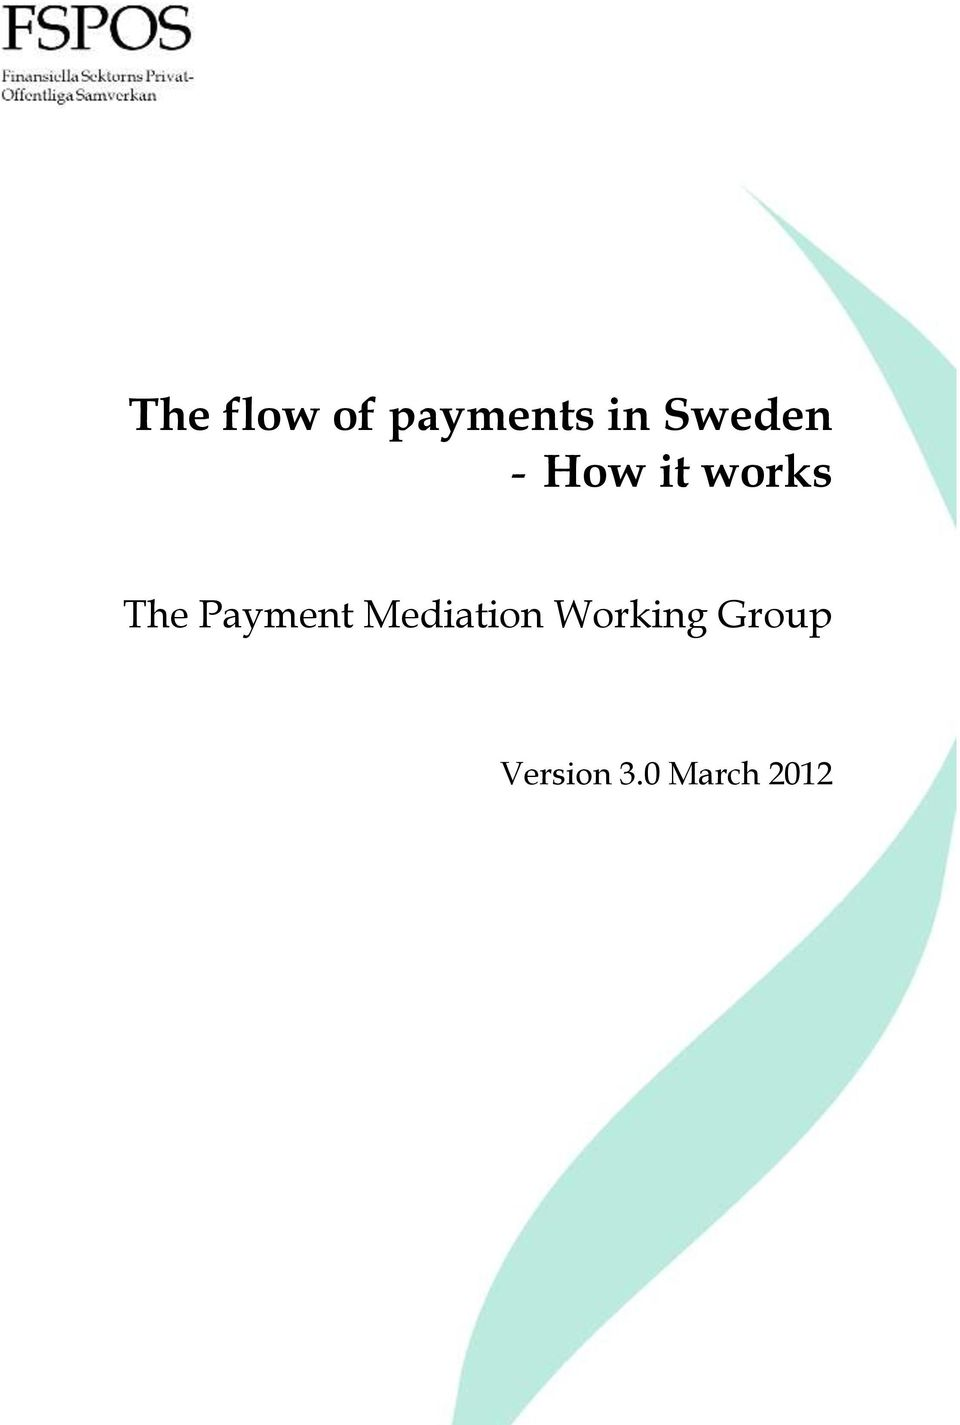 Payment Mediation Working